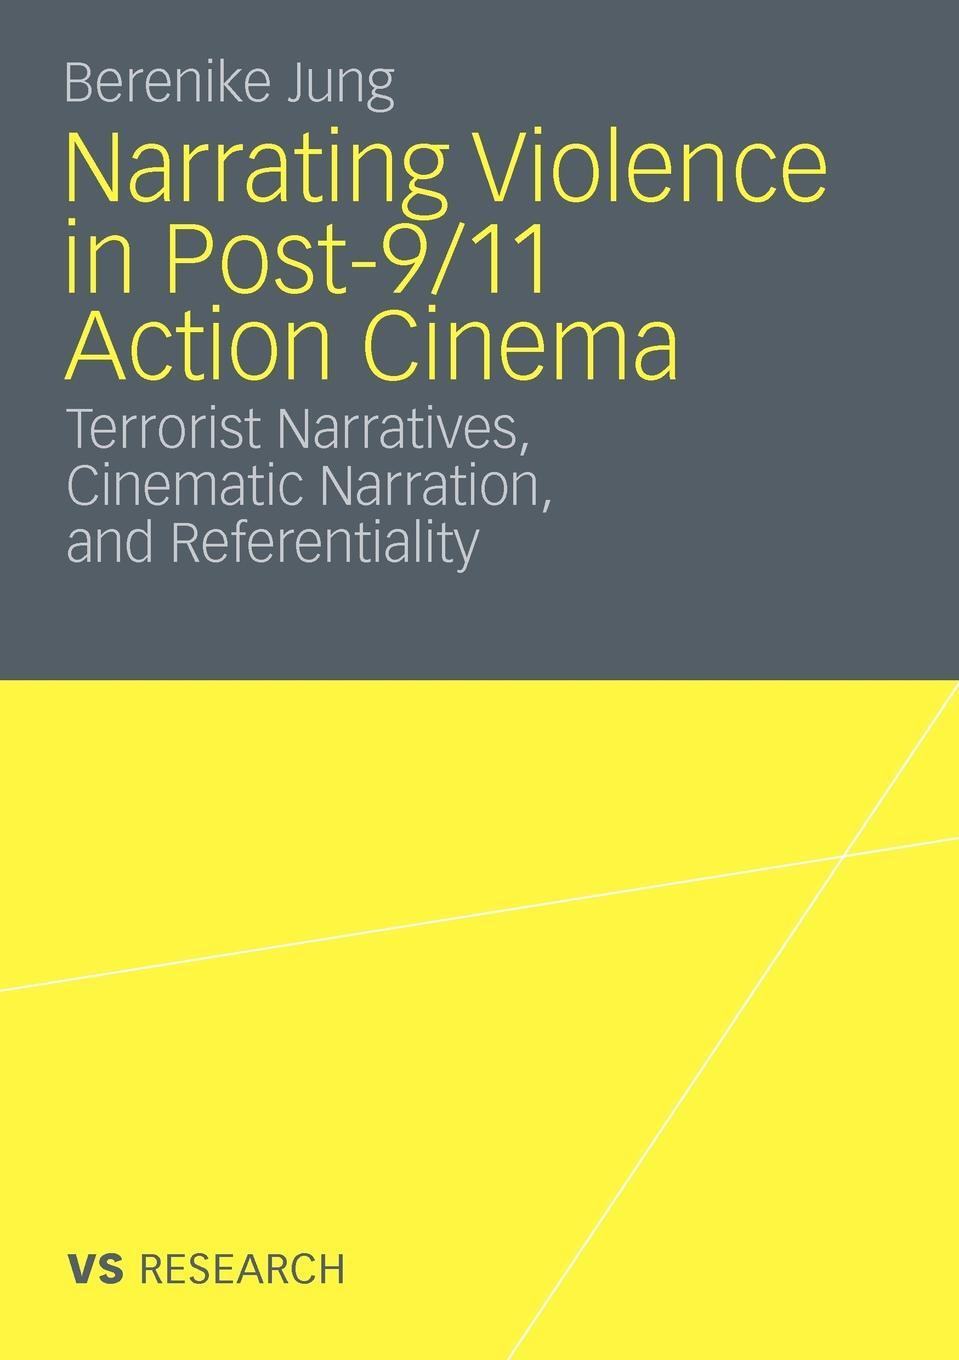 Narrating Violence in Post-9/11 Action Cinema. Terrorist Narratives, Cinematic Narration, and Referentiality. Berenike Jung